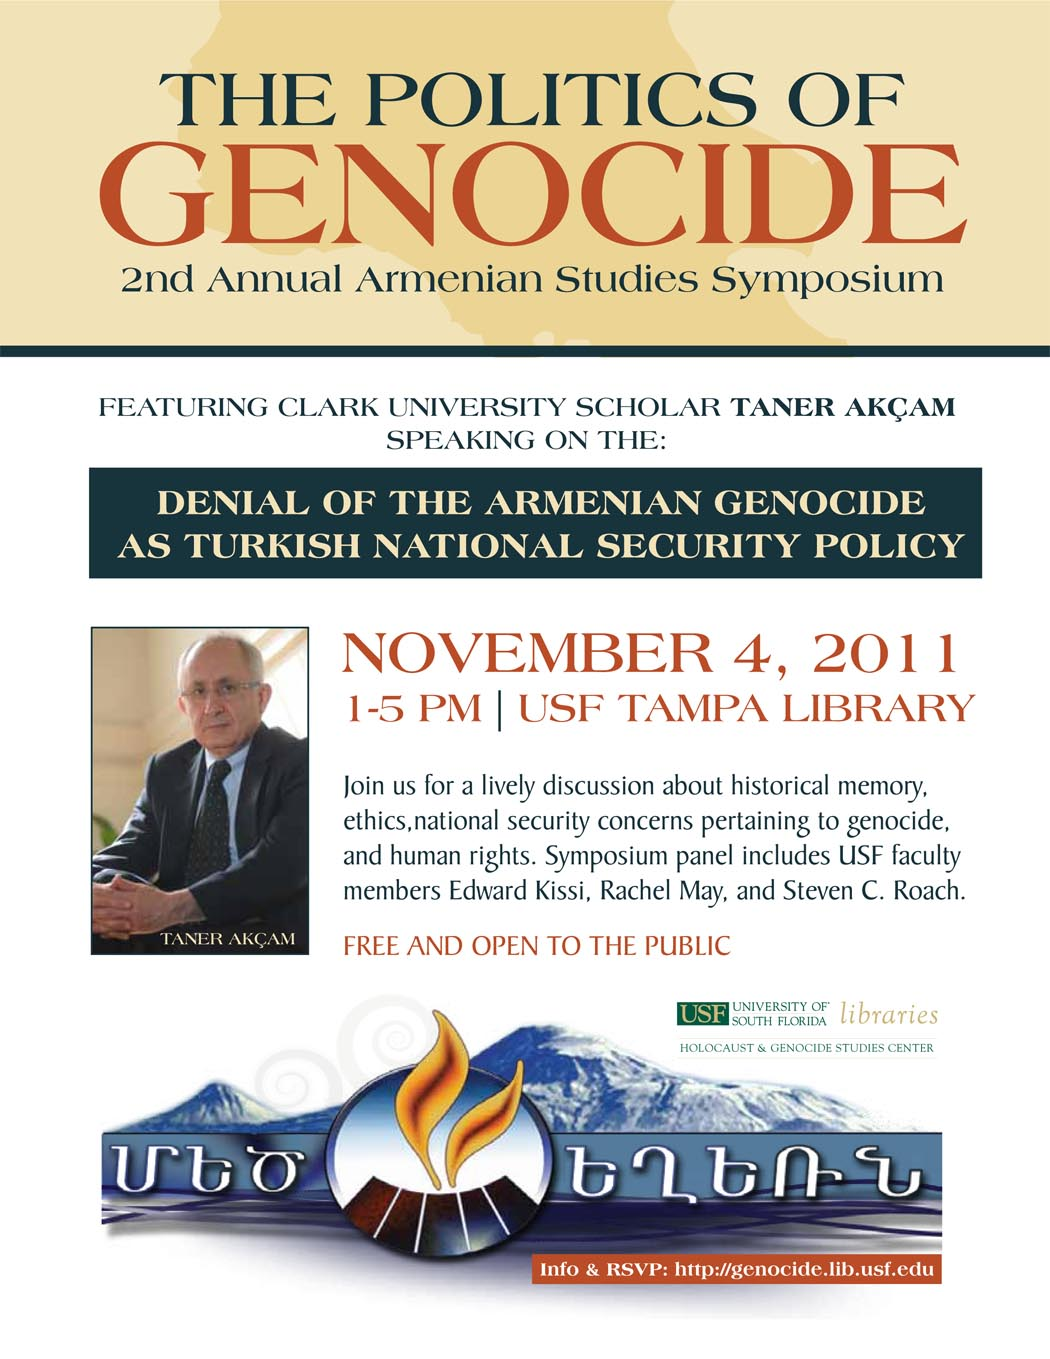 Armenia - The Politics of Genocide